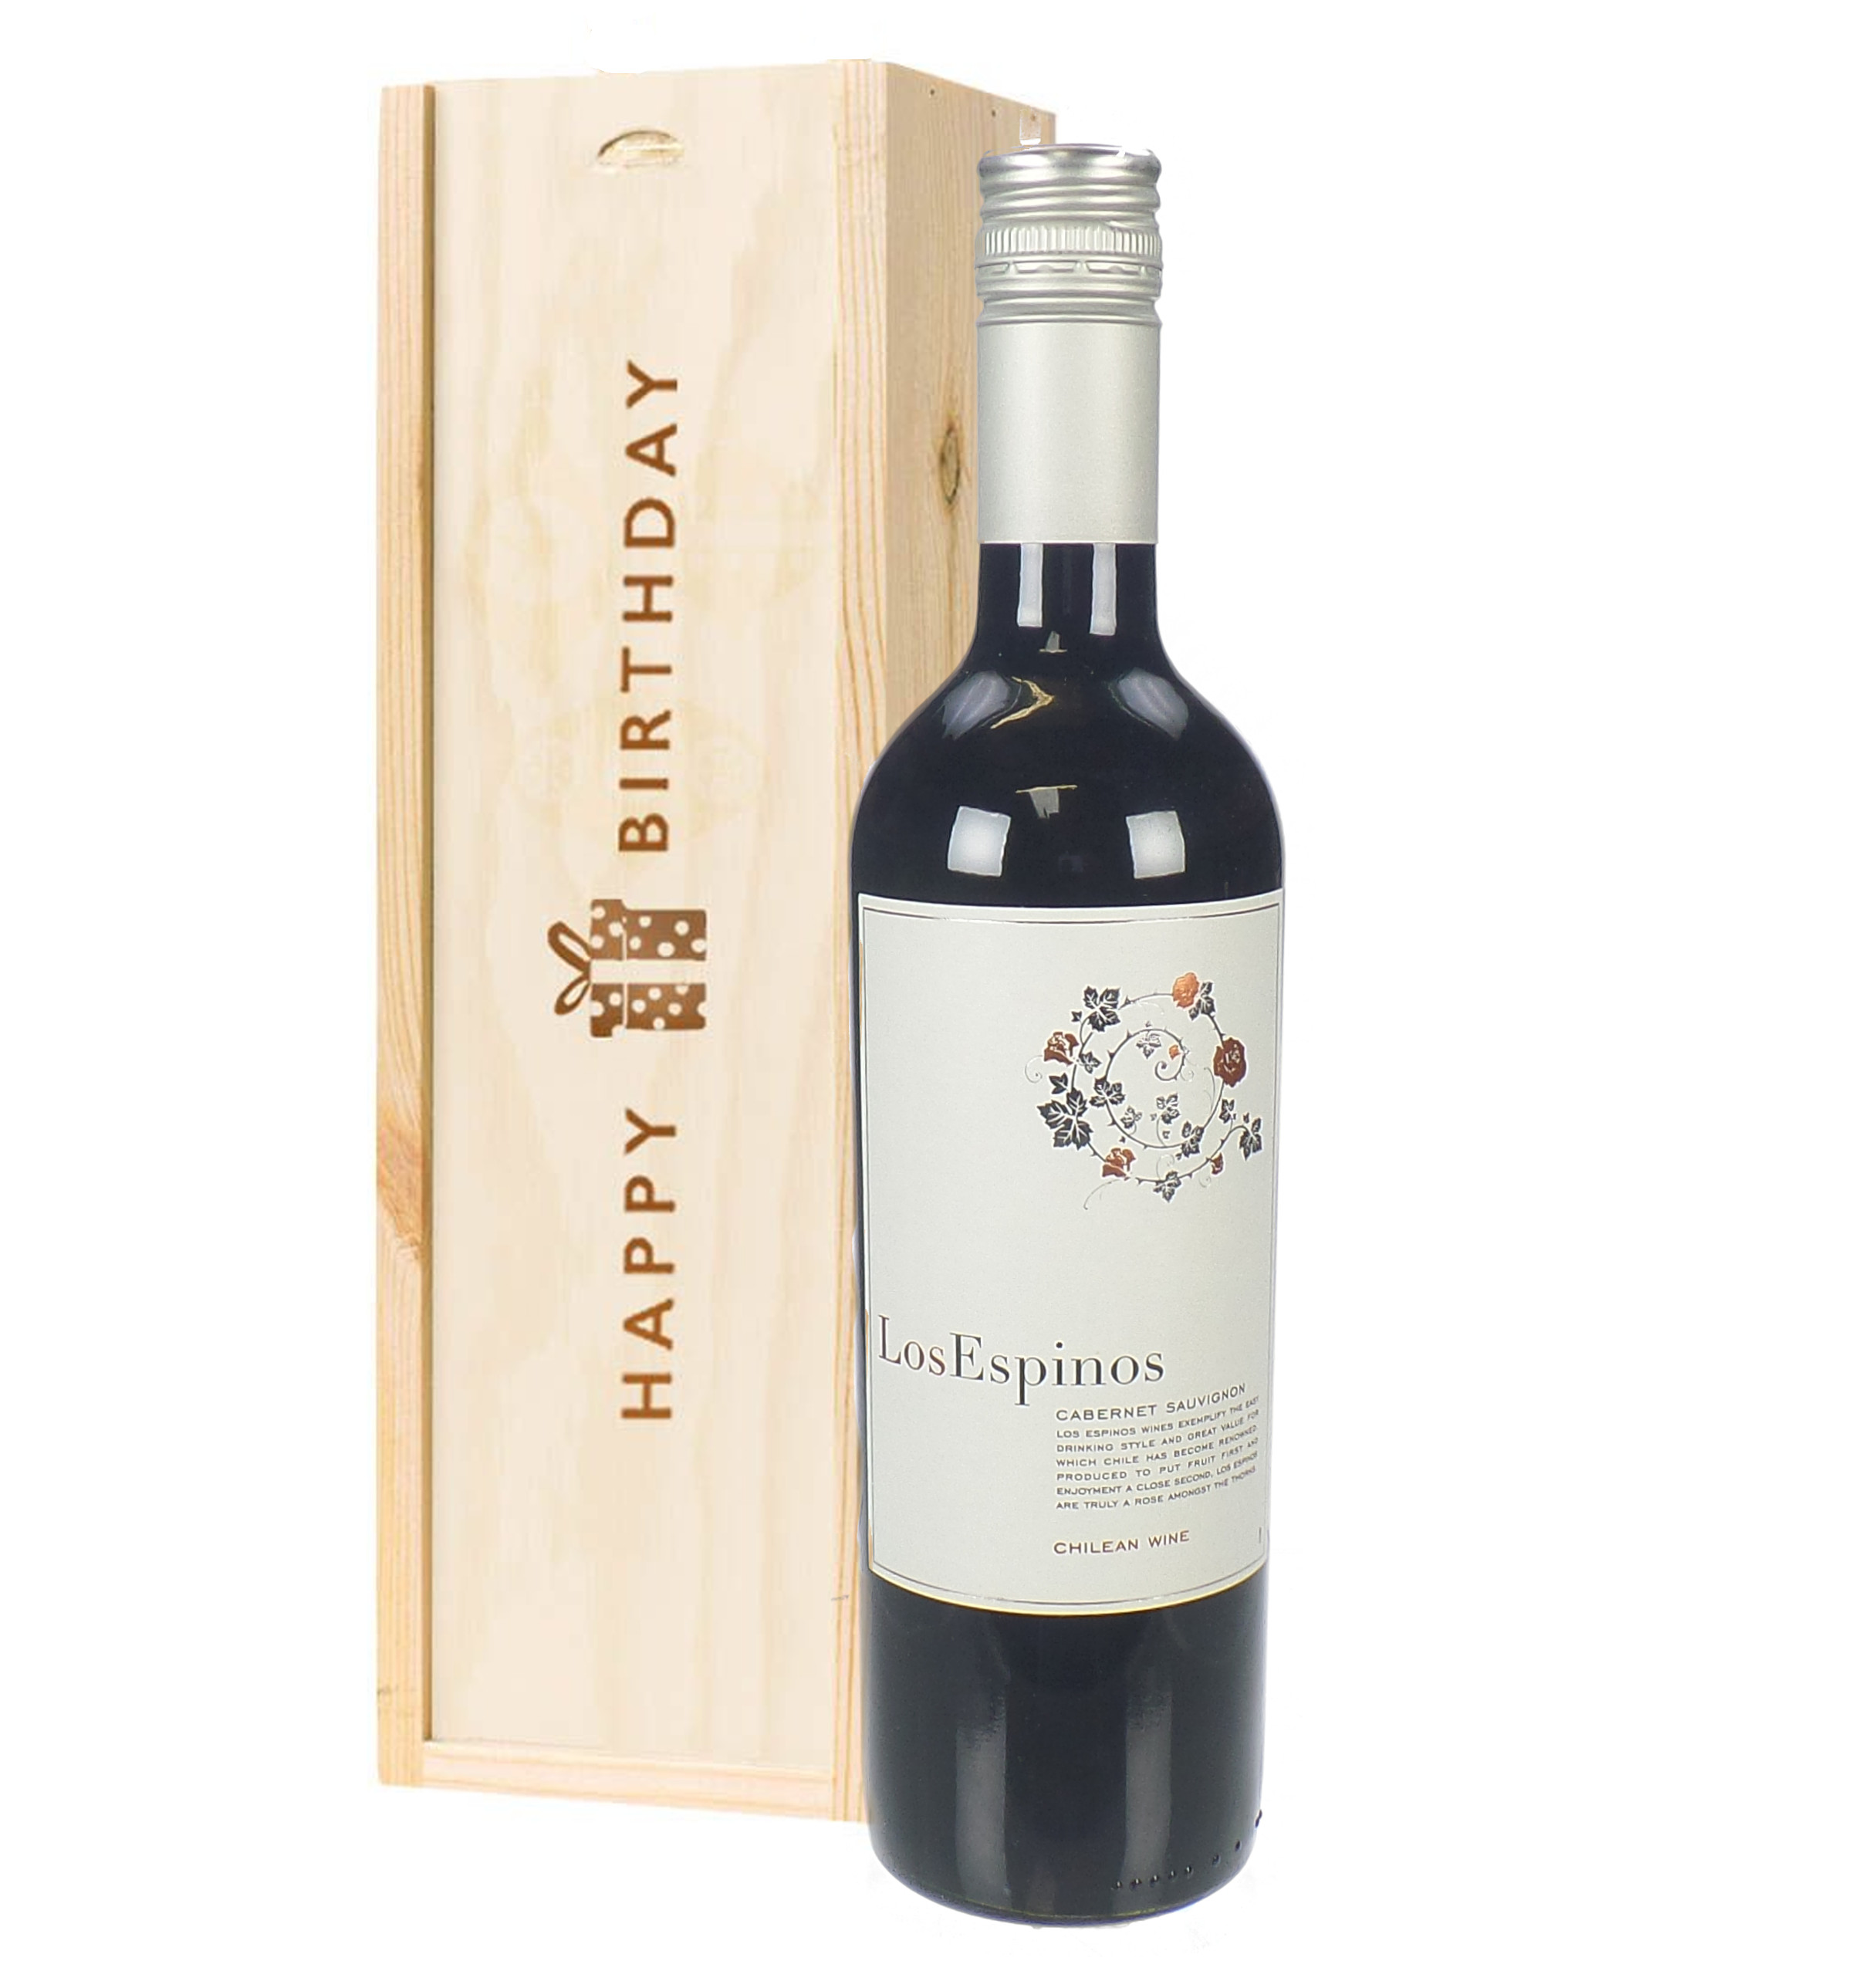 Cabernet Sauvignon Chilean Red Wine Birthday Gift In Wooden Box